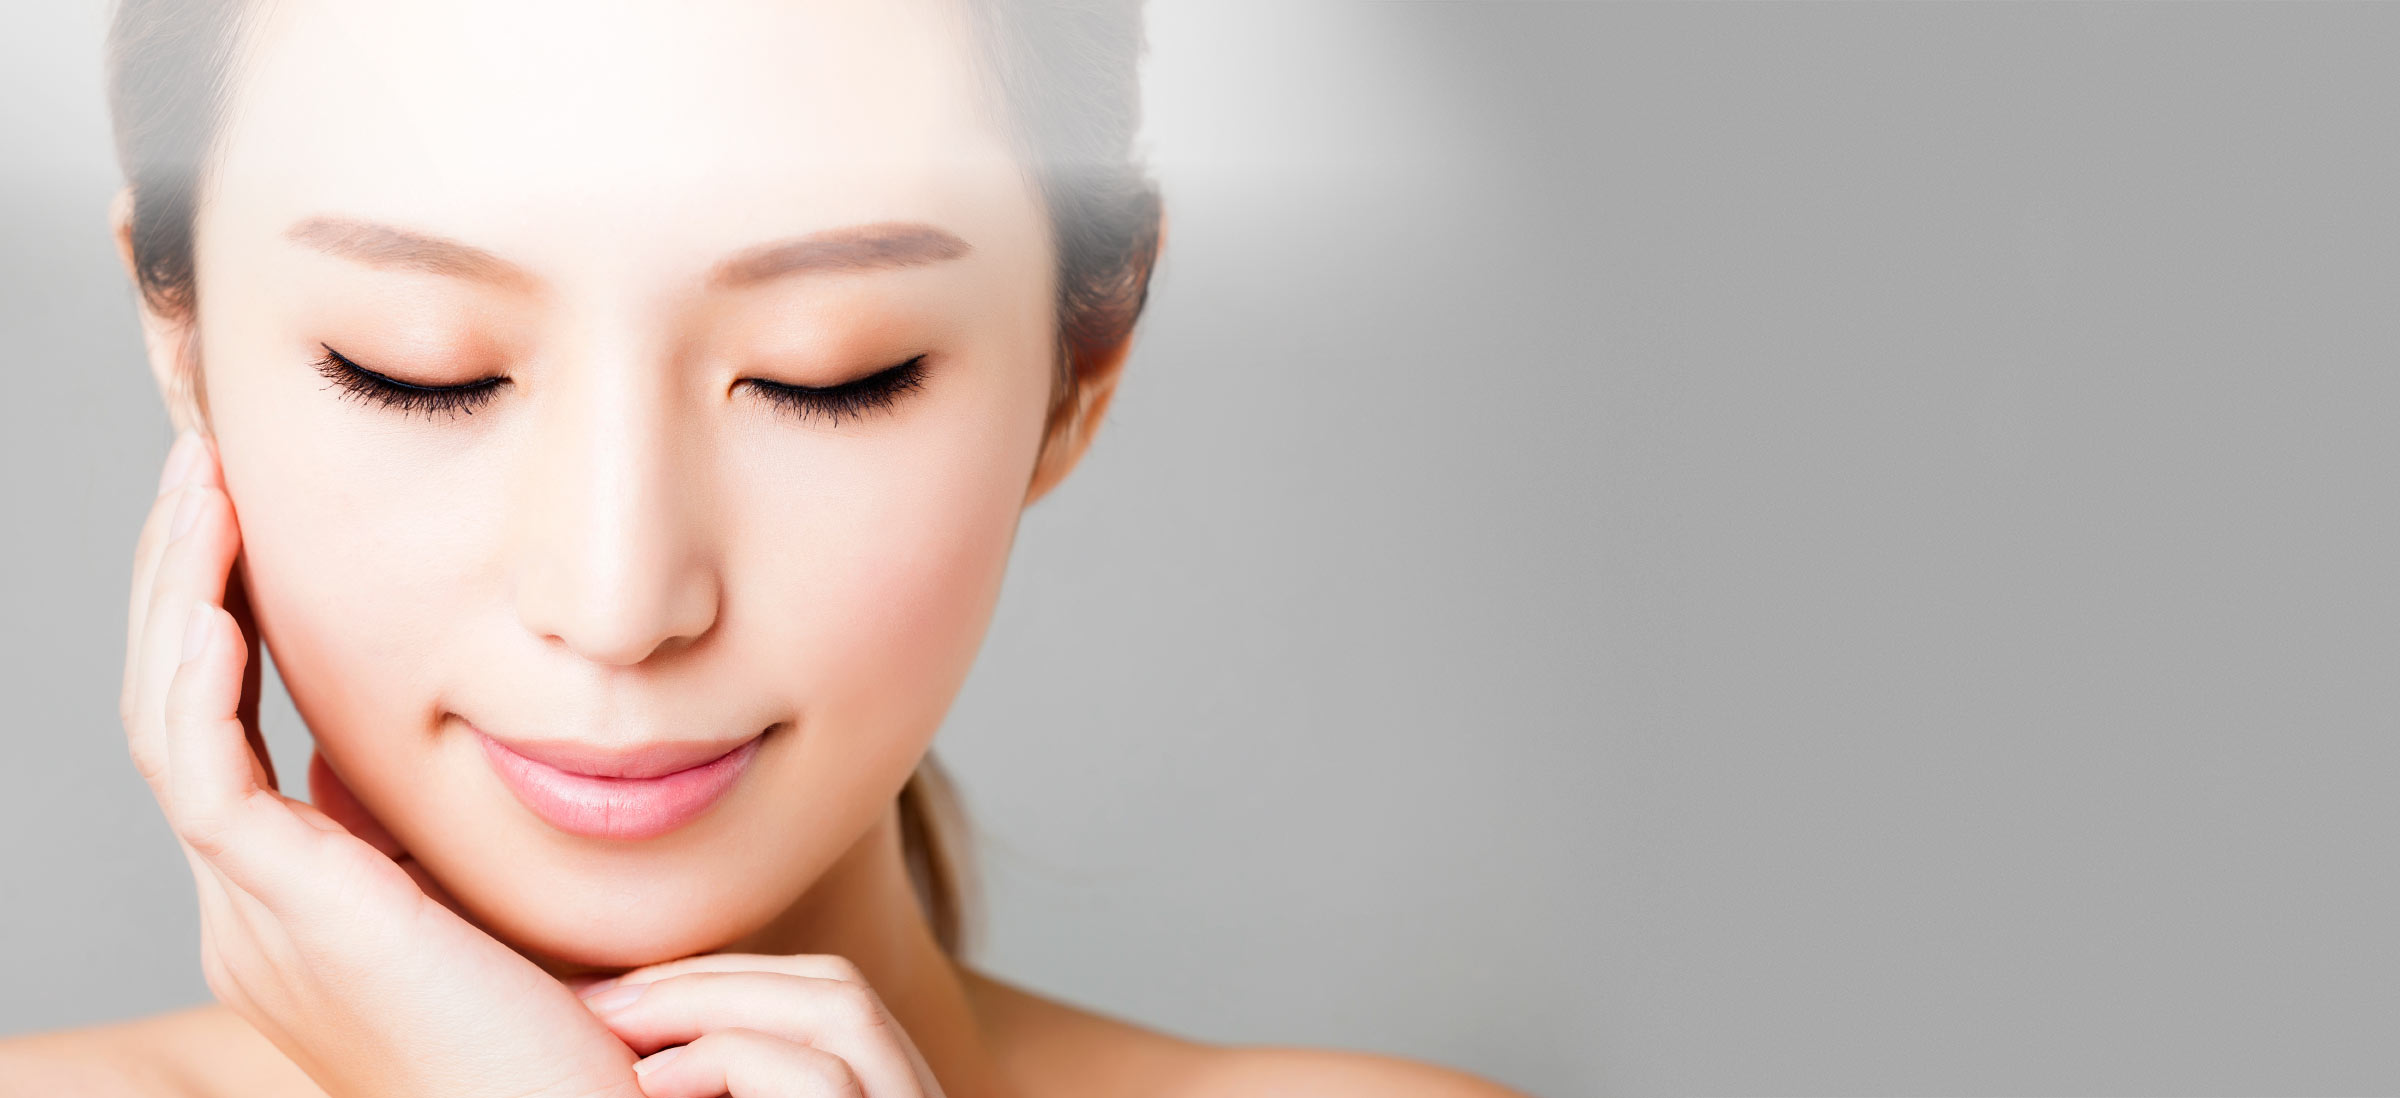 Lady touching her face after Laser Treatment